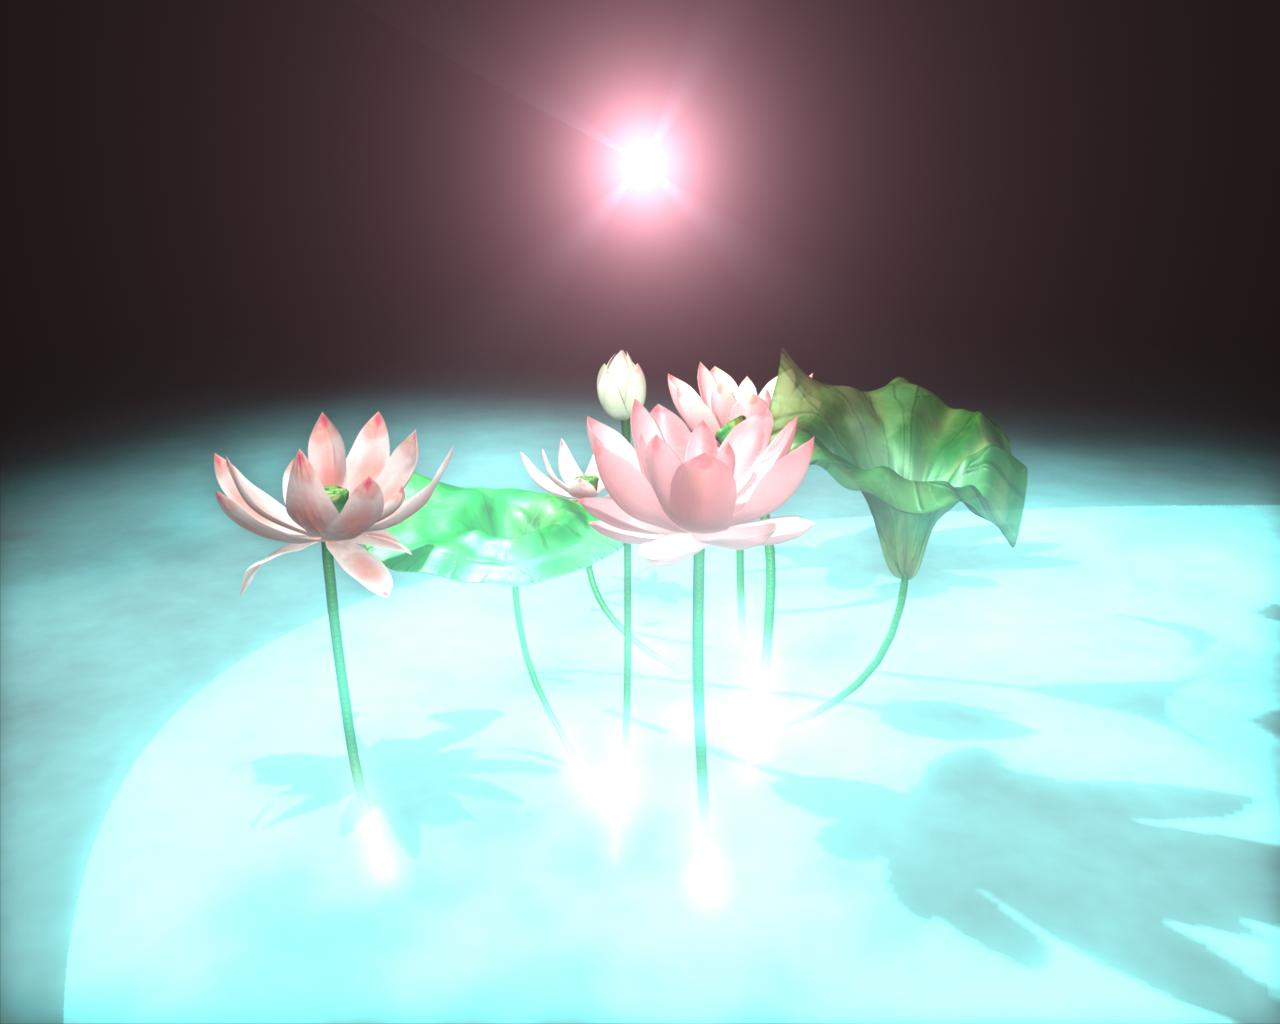 Painting Lotus Flowers In Other Dimensions Photo 3 Blogs